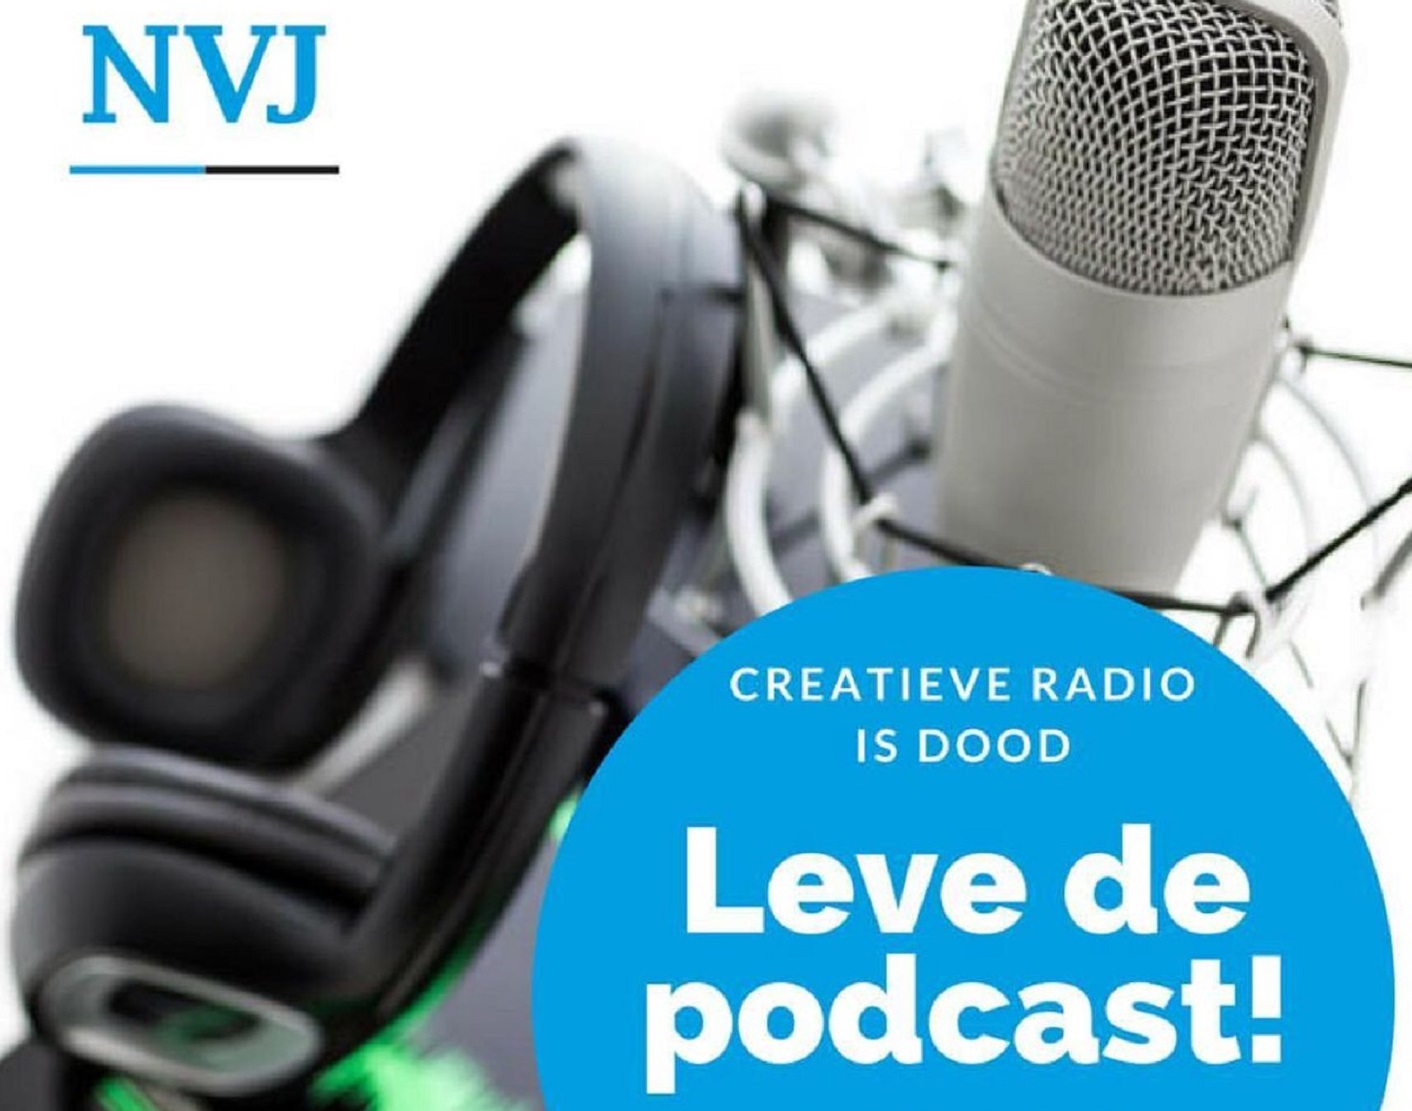 Creatieve radio is dood, leve de podcast!